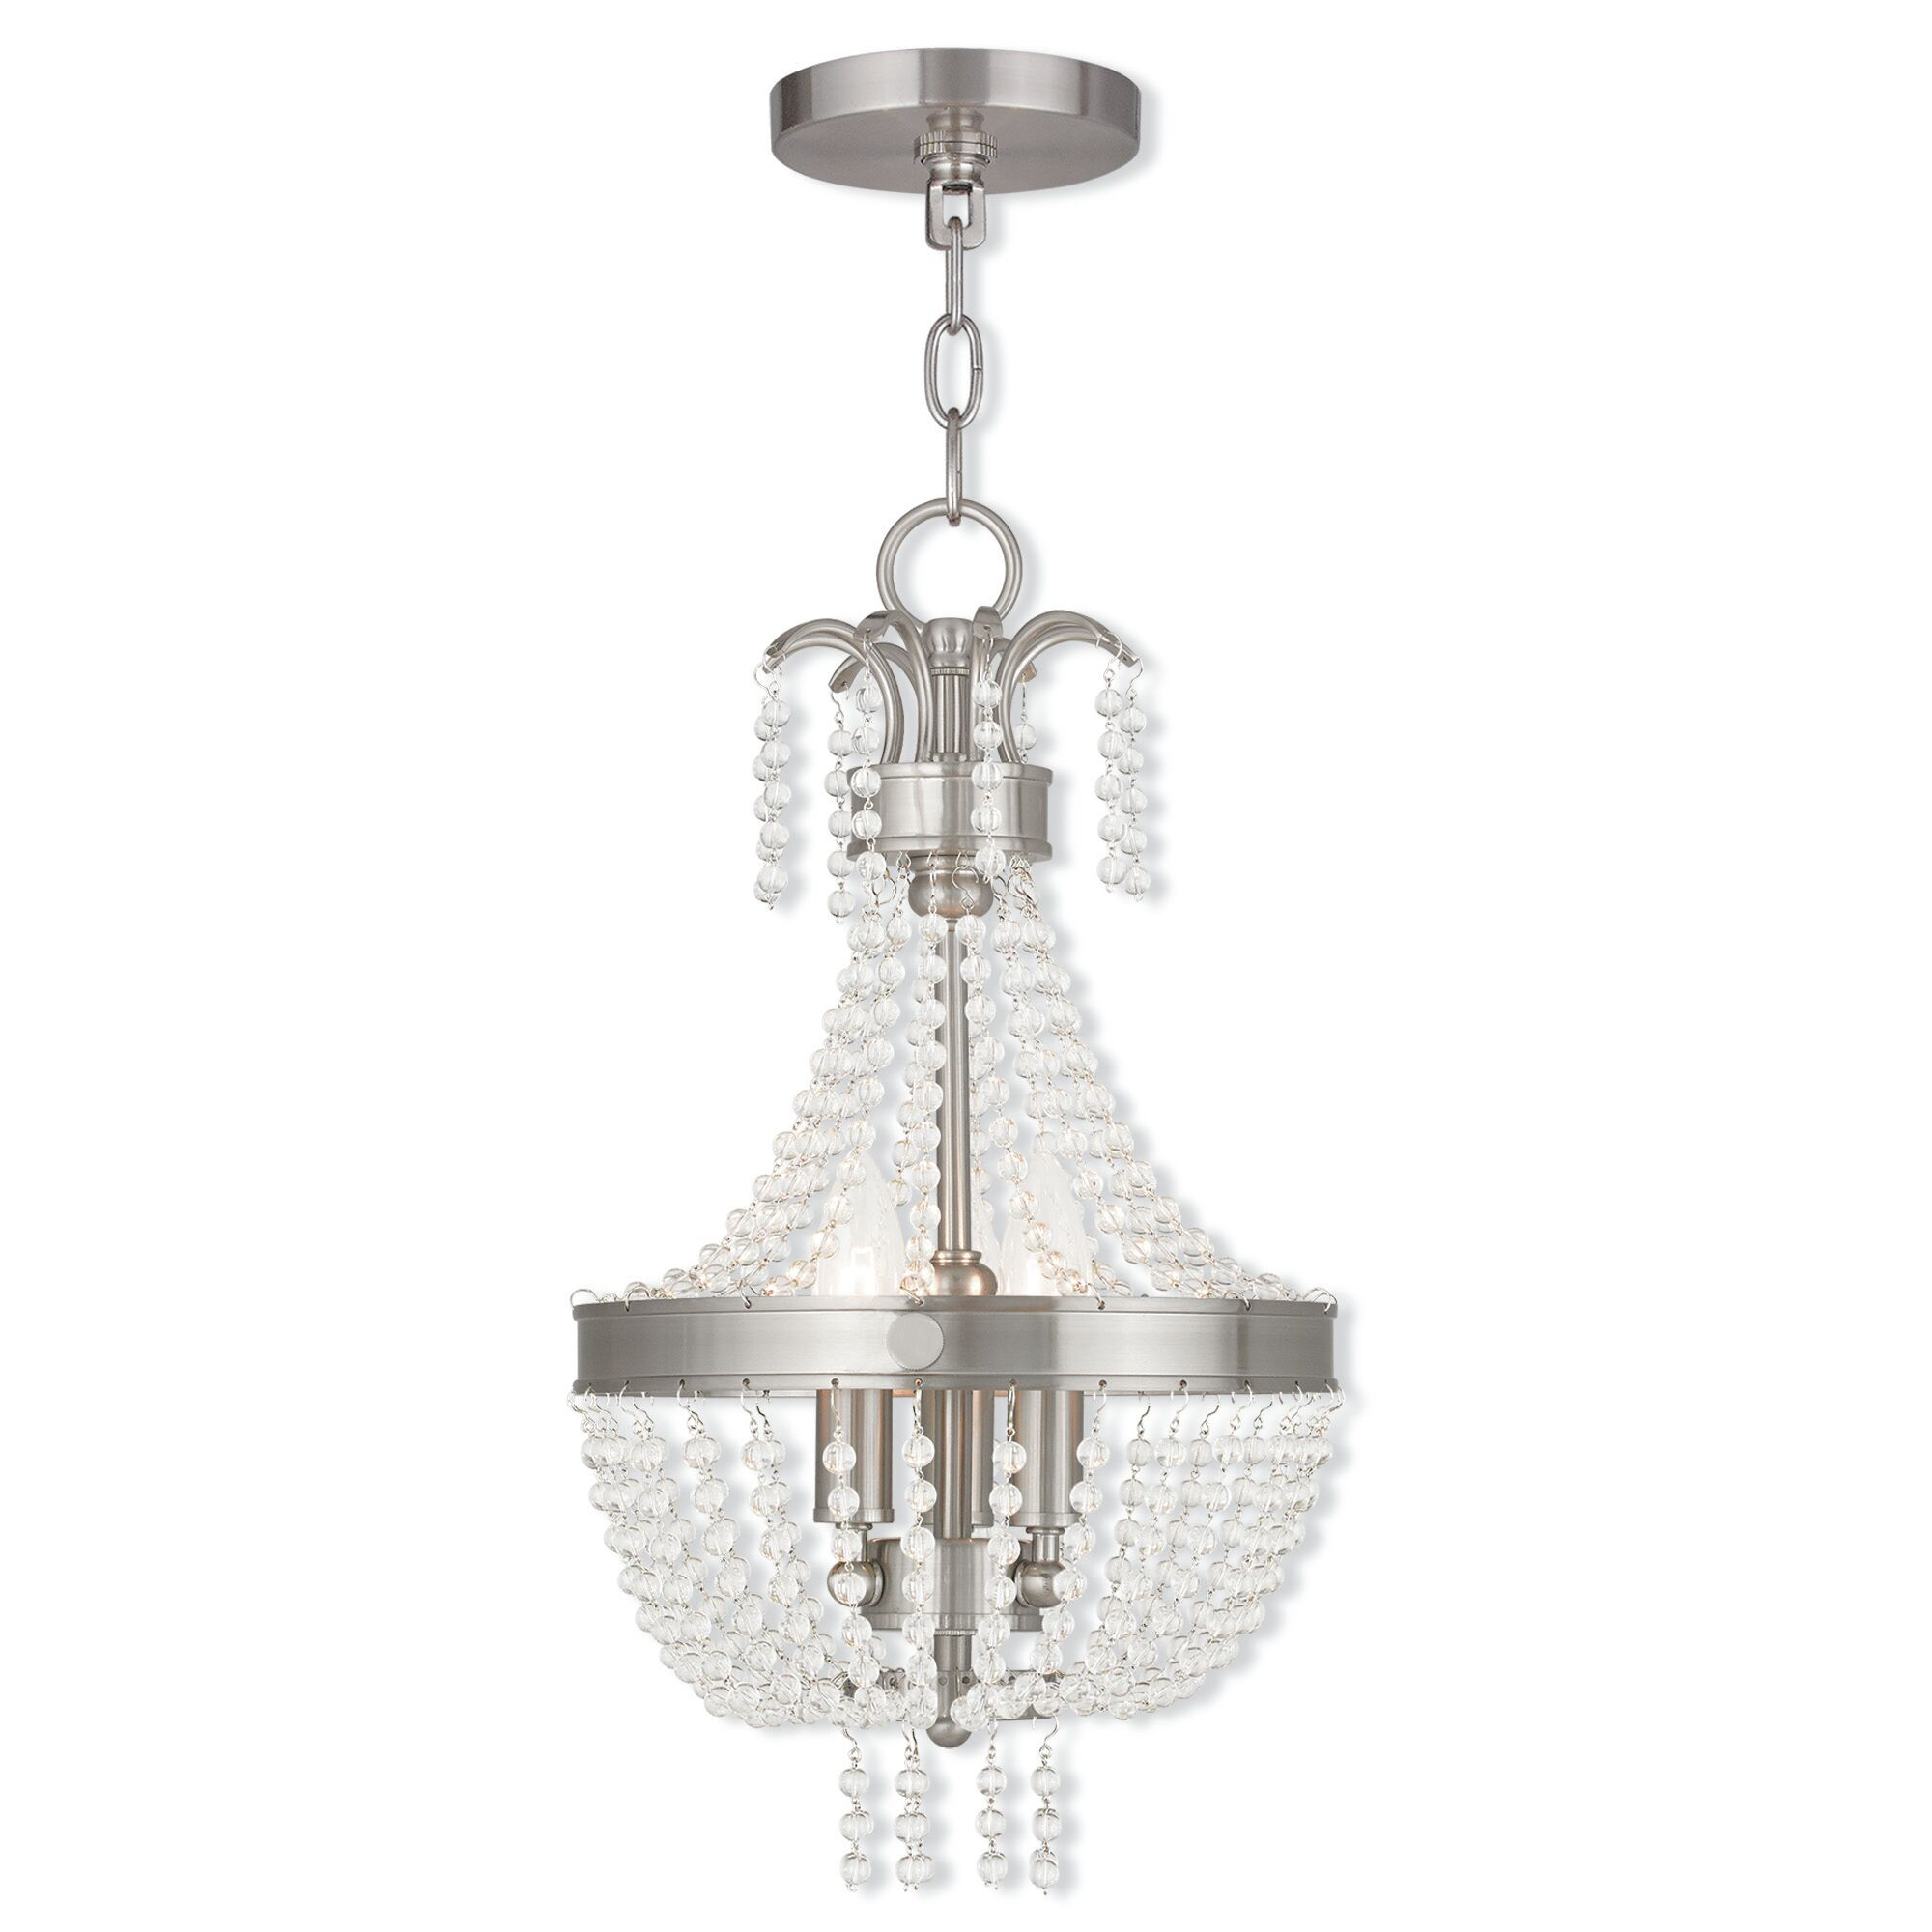 Rachedi 3-Light Empire Chandelier Finish: Brushed Nickel